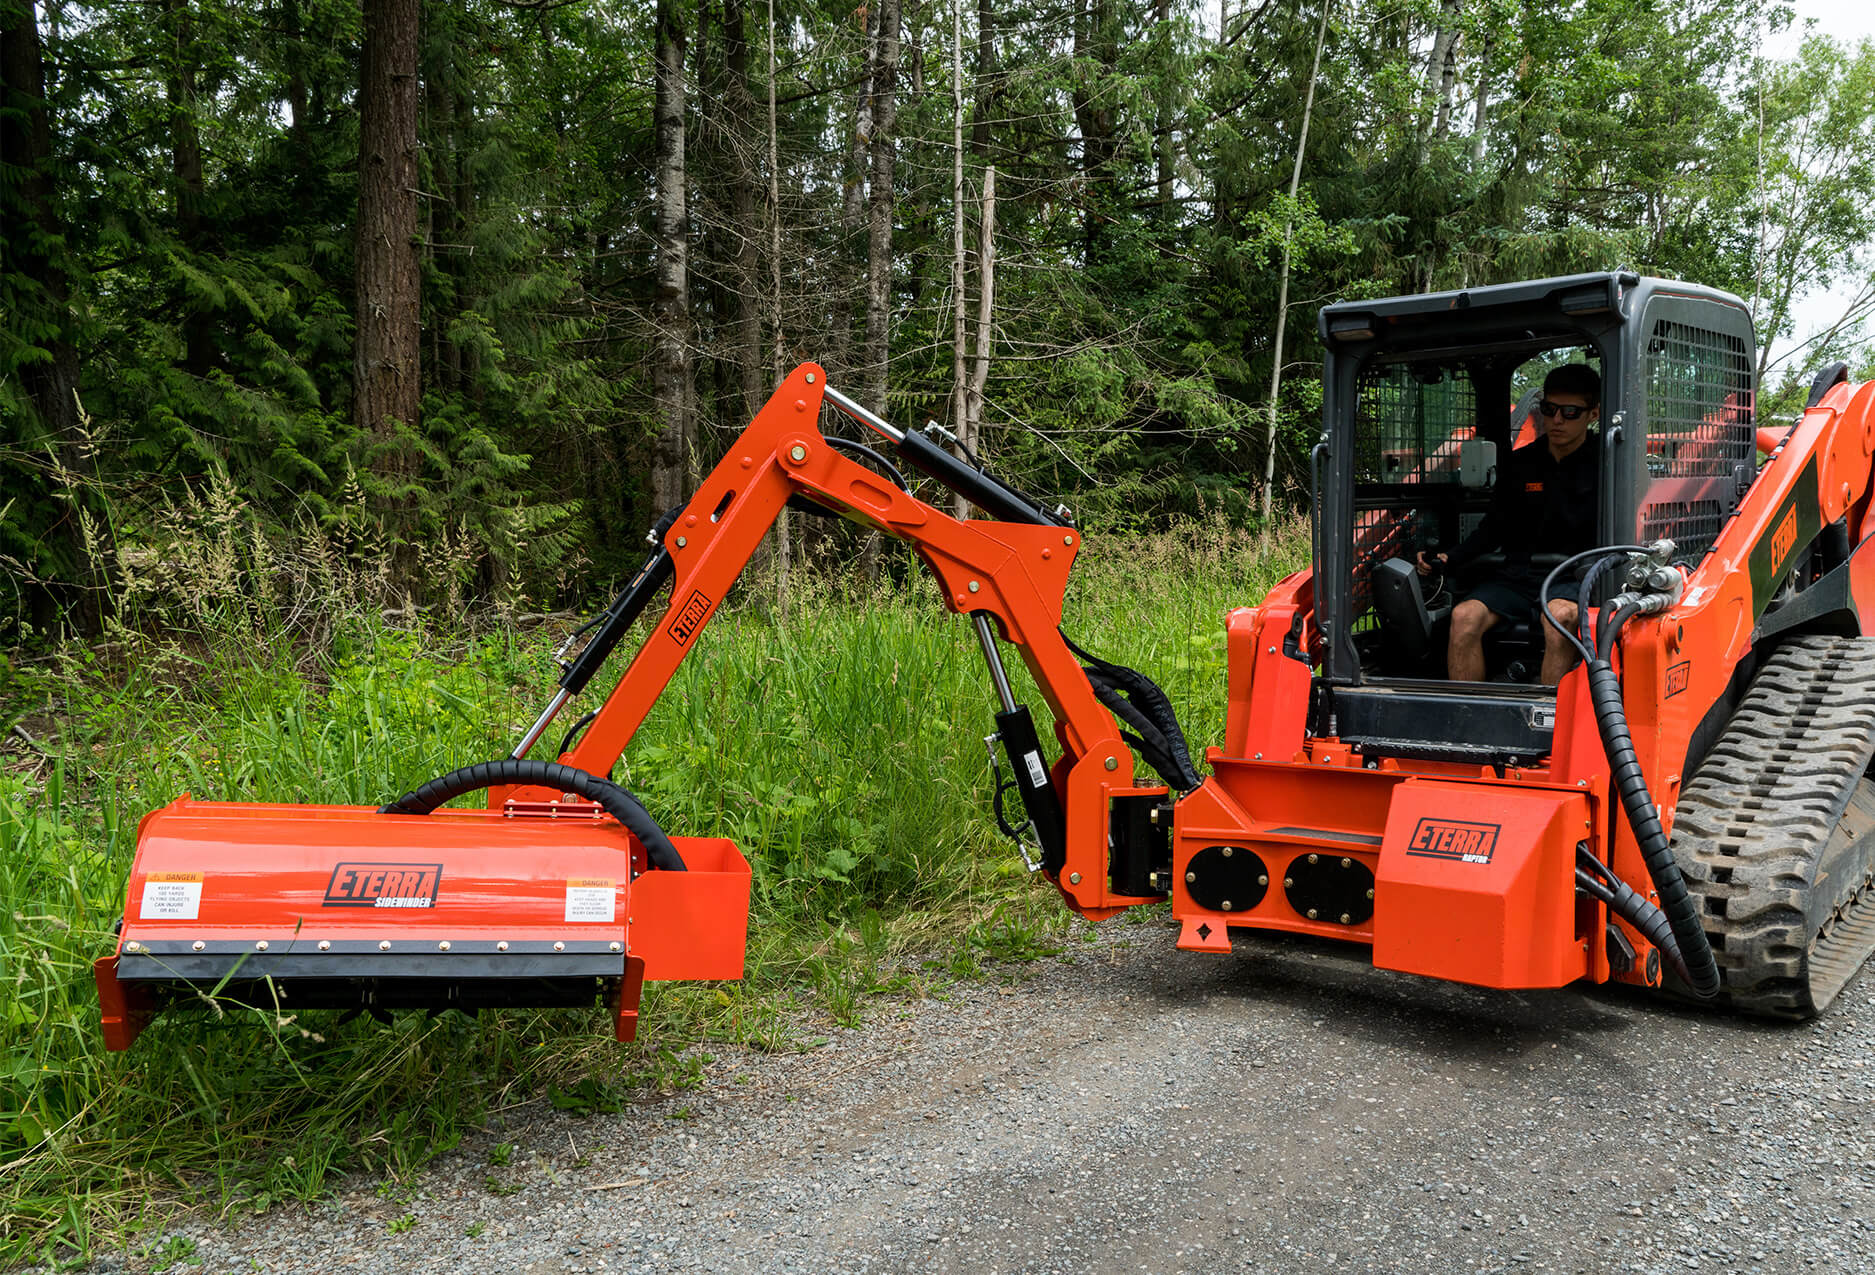 Eterra Sidewinder Skid Steer flail mower on Raptor boom arm mowing roadside